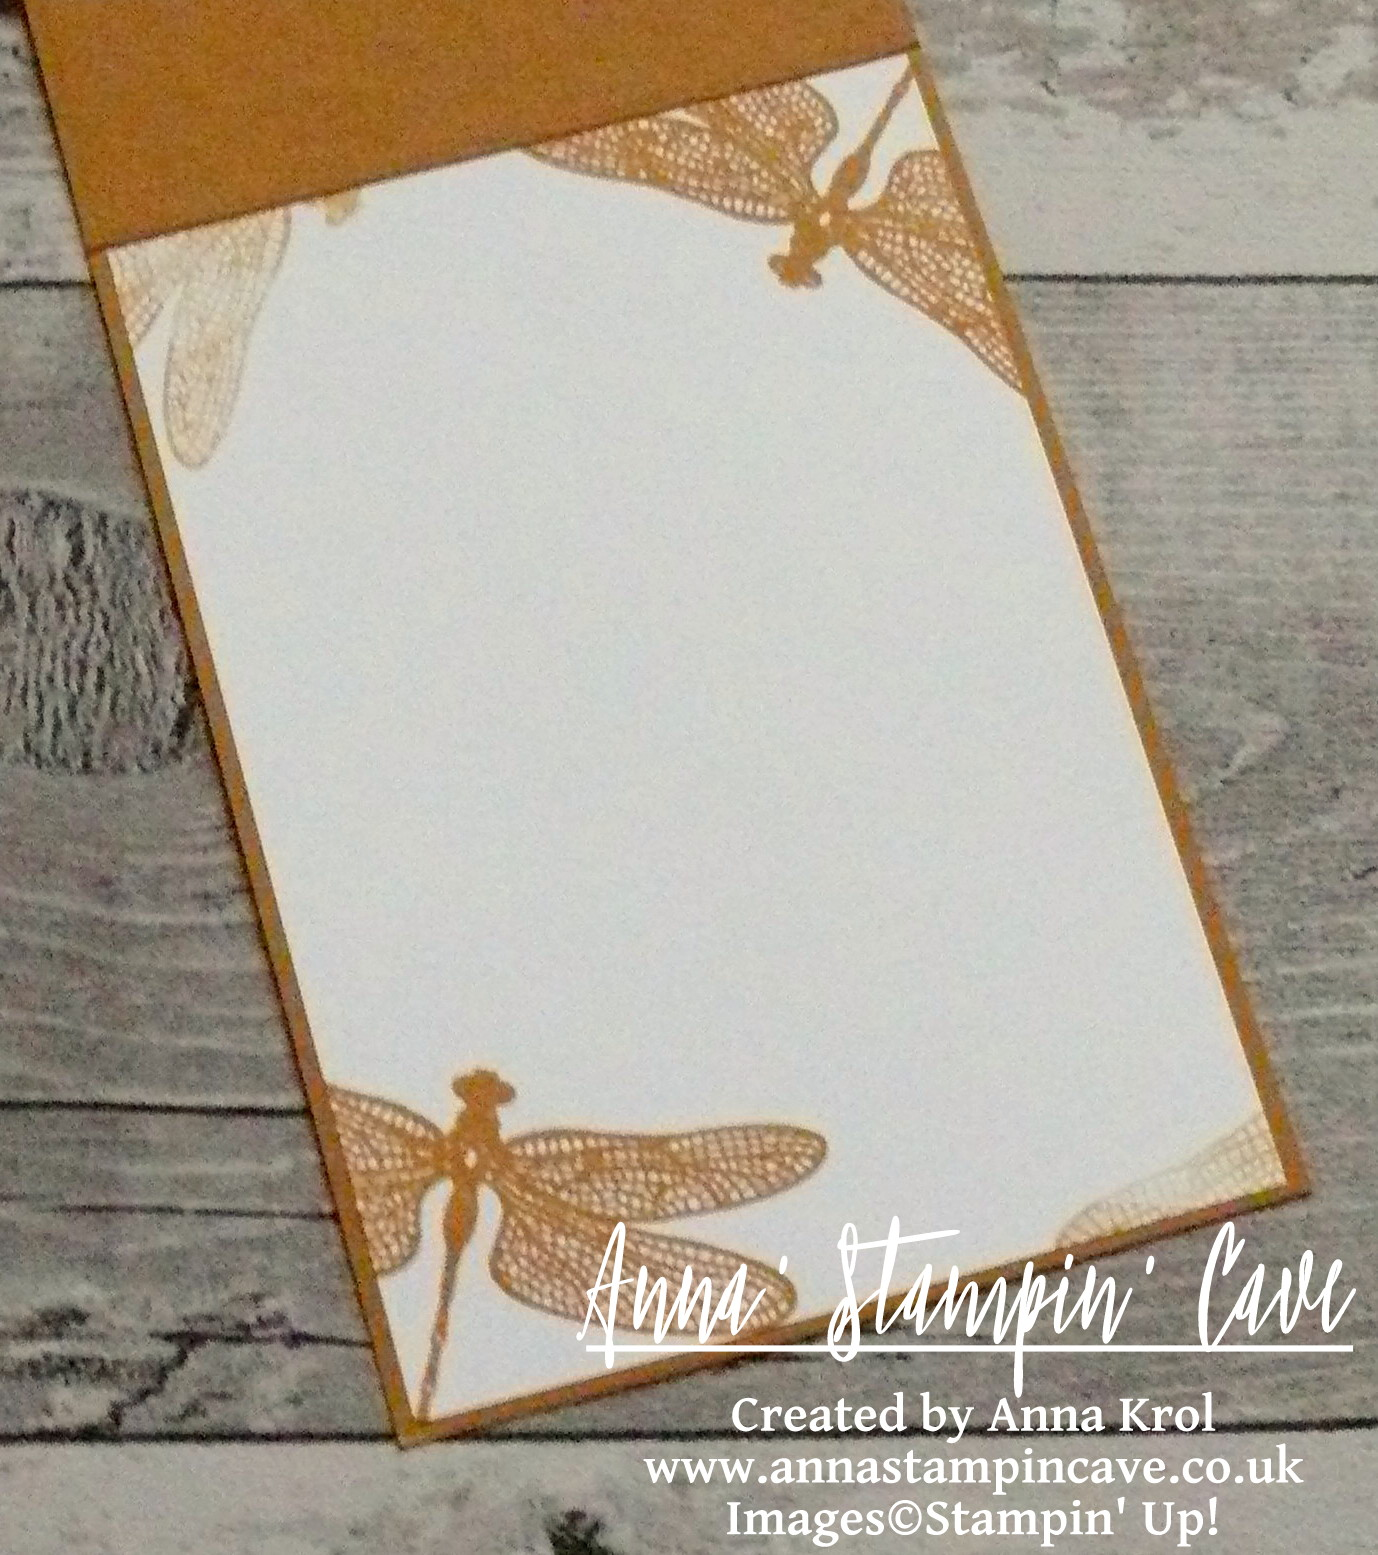 anna-stampin-cave-stampin-up-dragonfly-dreams-bundle-clean-and-simple-card-inside